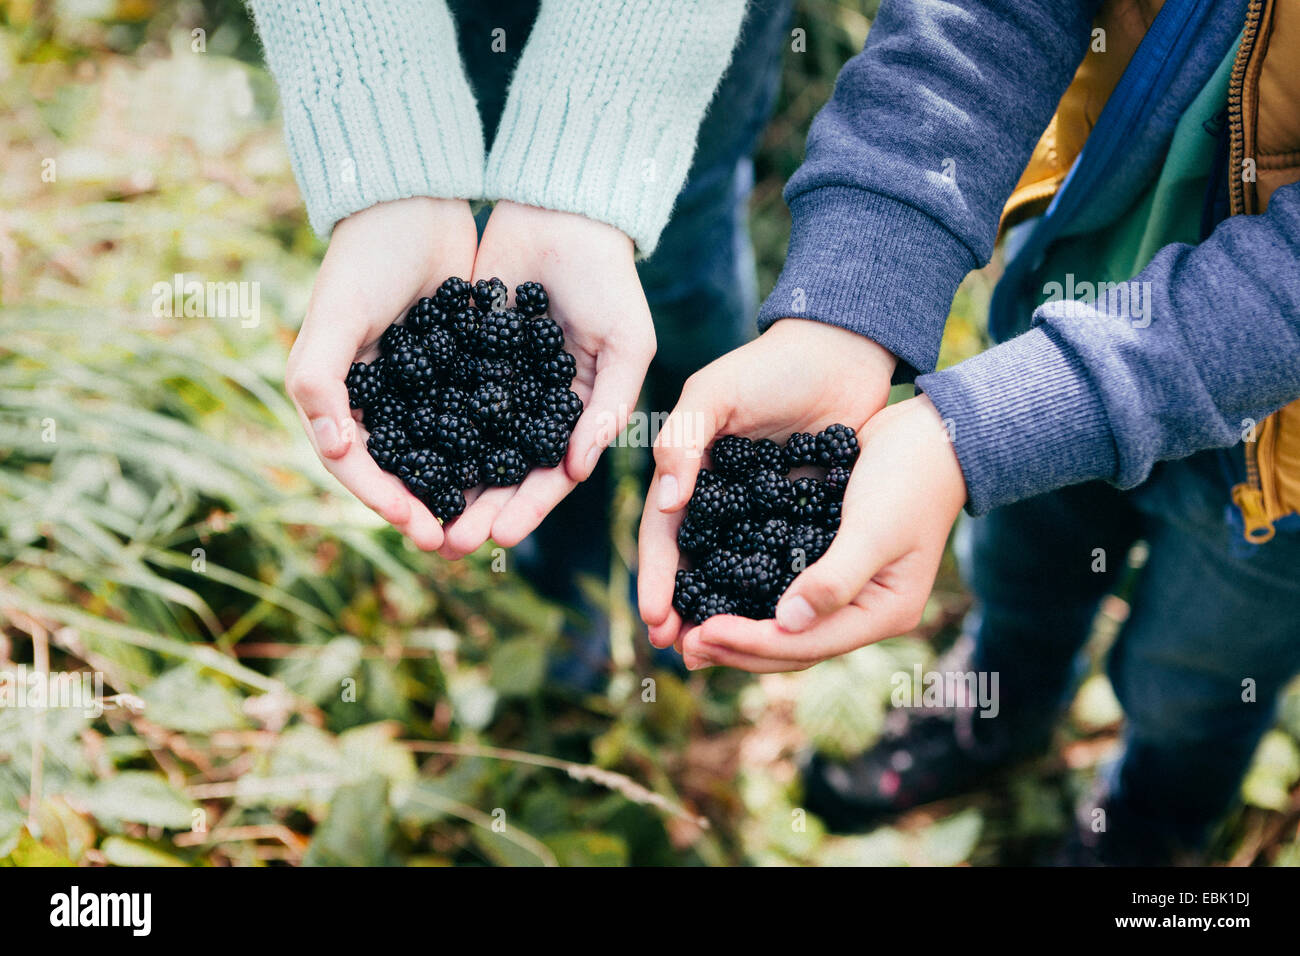 Two people holding blackberries in cupped hands - Stock Image